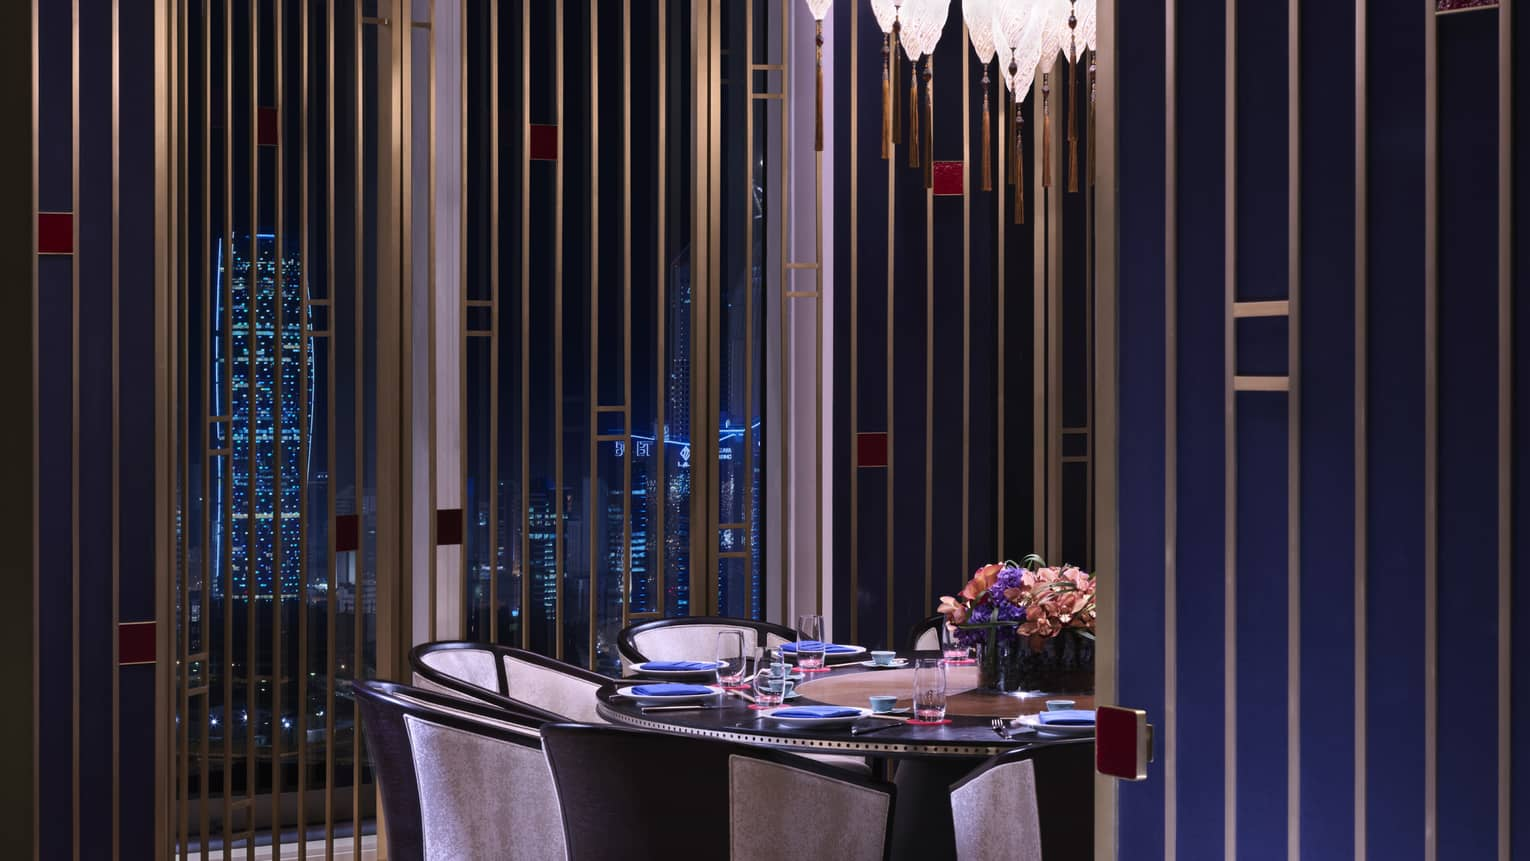 Elegant round dining table, chairs under small crystal light in front of window with city views at night